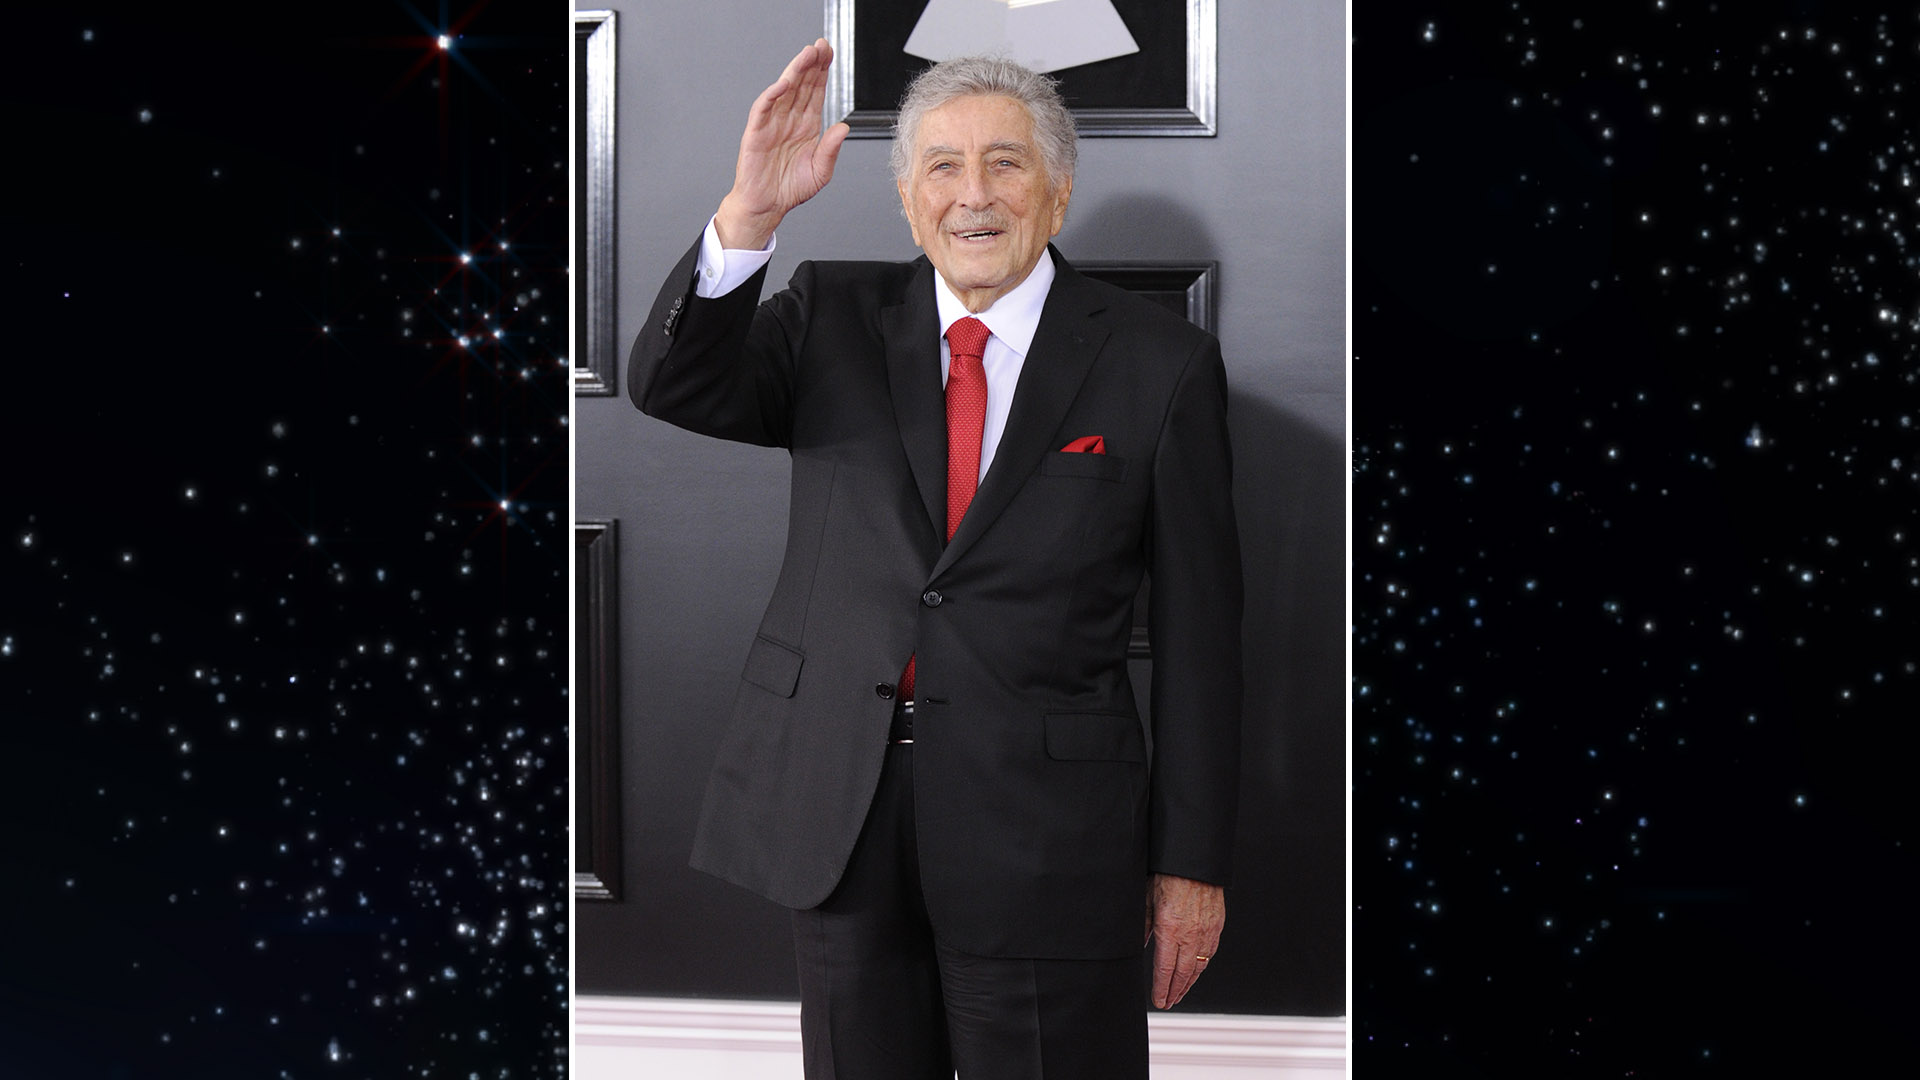 Jazz legend Tony Bennett waves to his many admirers on the 60th Annual GRAMMY Award red carpet.